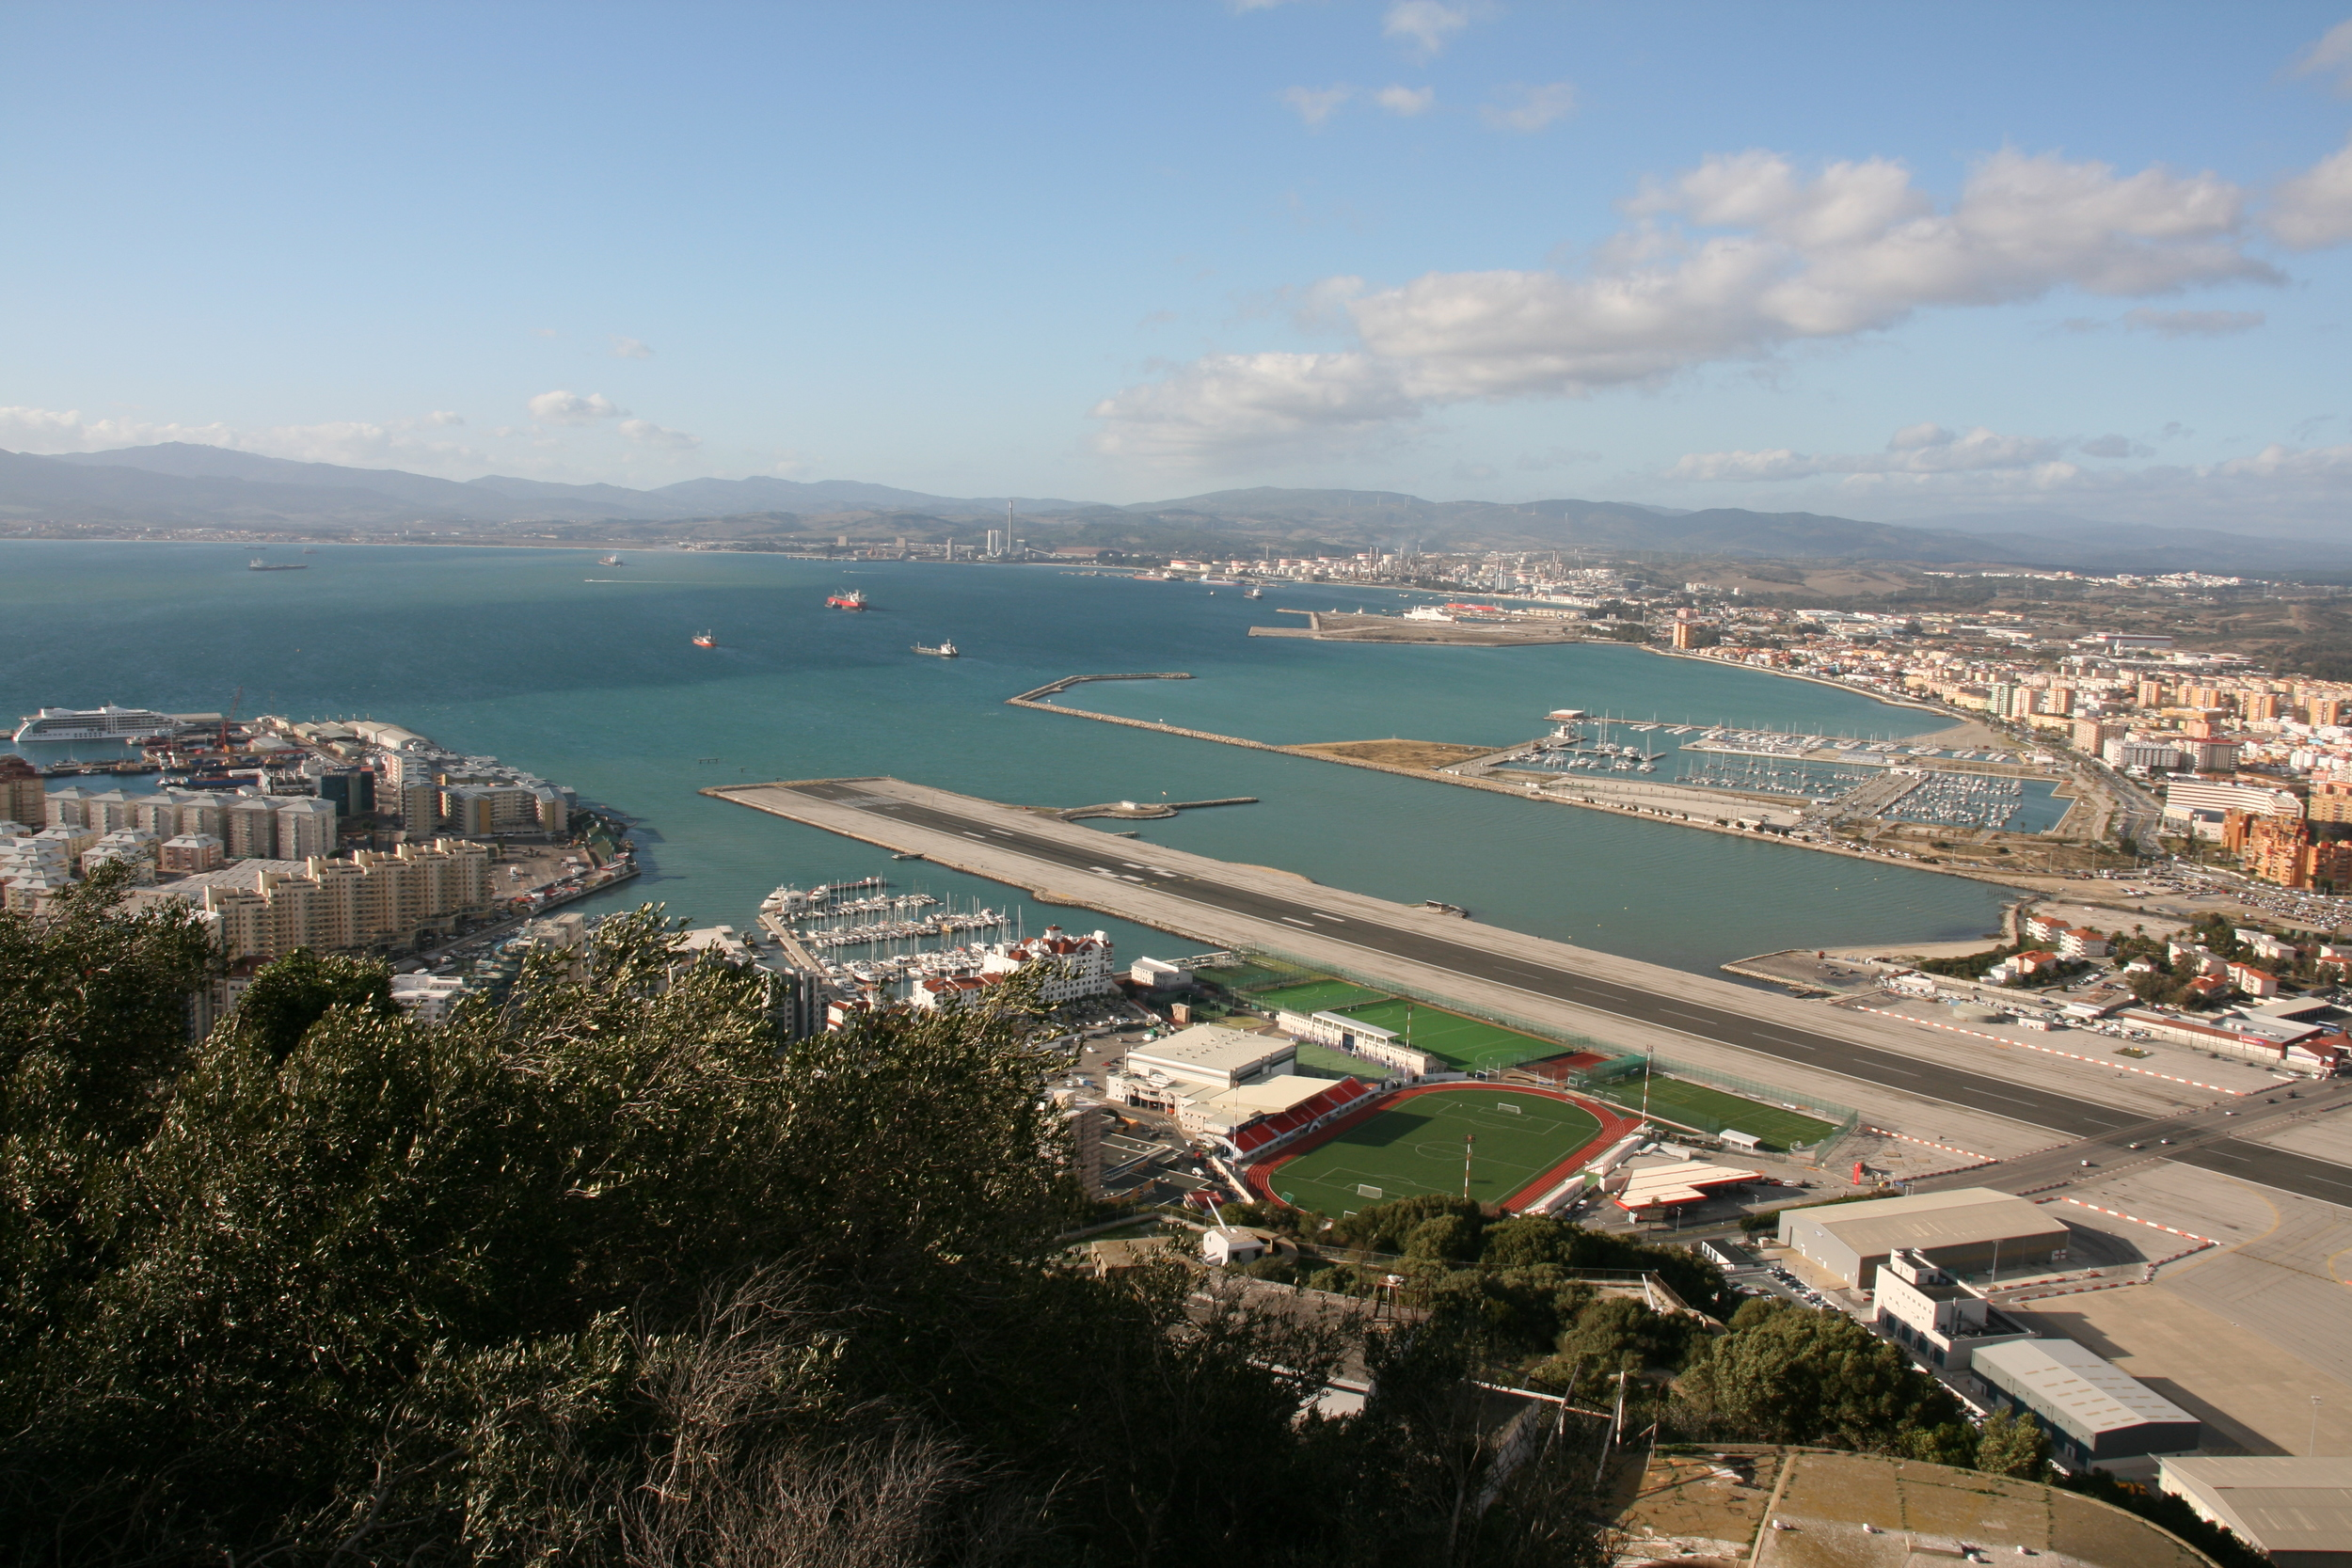 """The Great Siege Tunnels.  Gibraltar airport cuts though the entire territory. The main road connecting Gibraltar with Spain (to the right) has to be closed and the runway inspected when a jet is about to taxi and take off. The city of La Línea de la Concepción (short just """"La Línea"""") and its marina is to the right part of the photo. To the left: Gibraltar's Reclamation Areas and Ocean Village Marina featuring some luxury condos."""